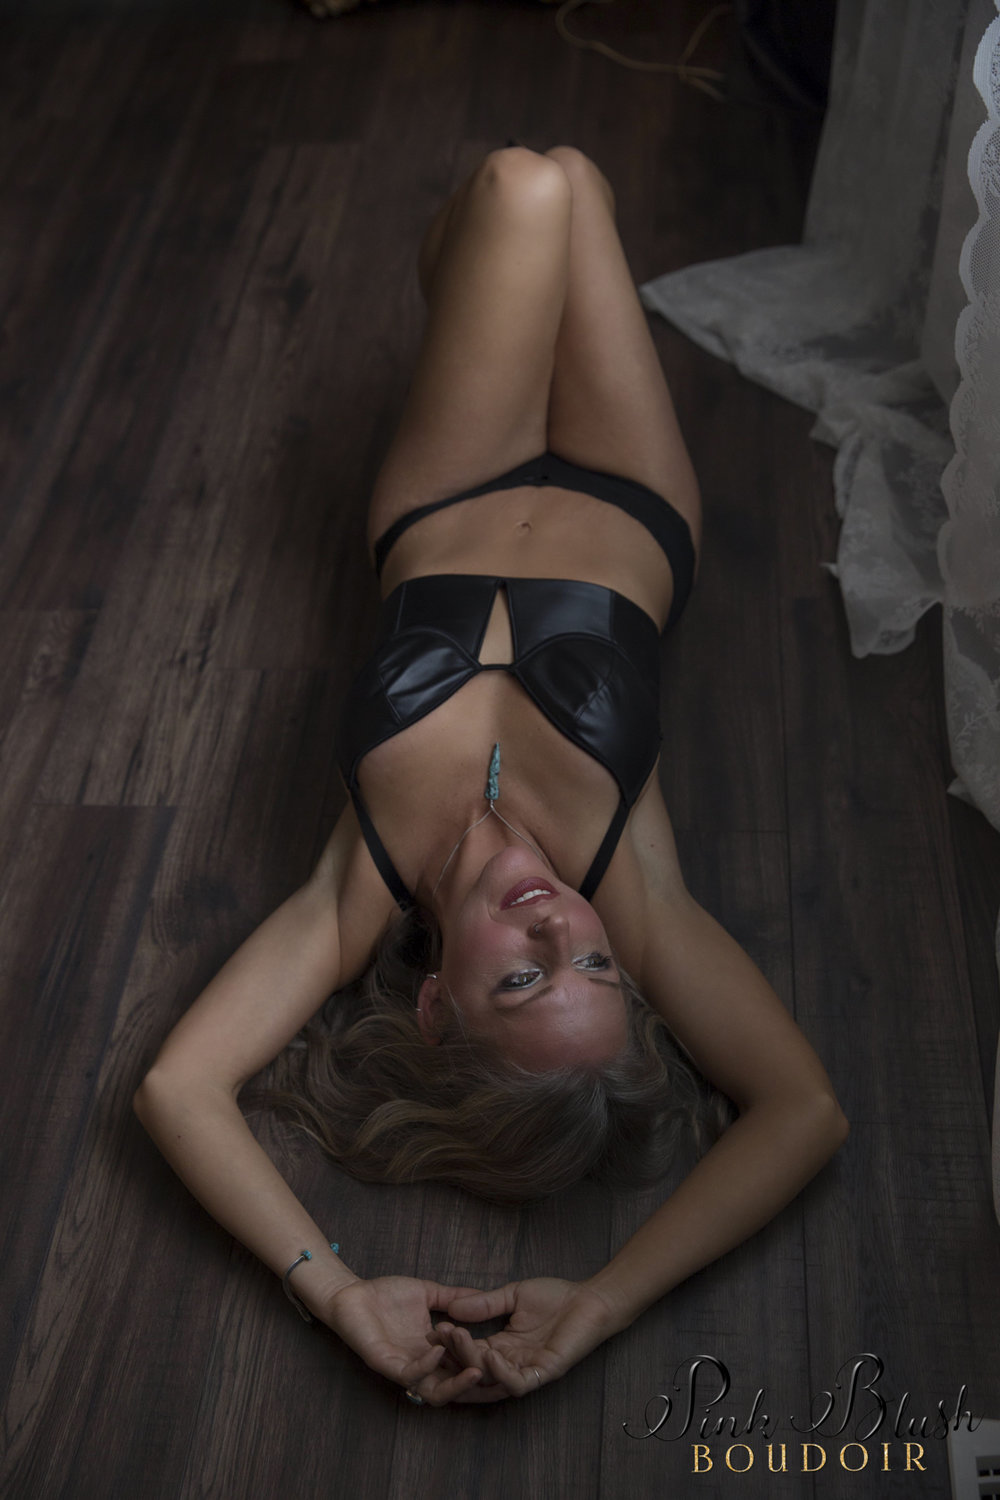 boudoir photos, a woman in a black bra and panty set laying on a hardwood floor